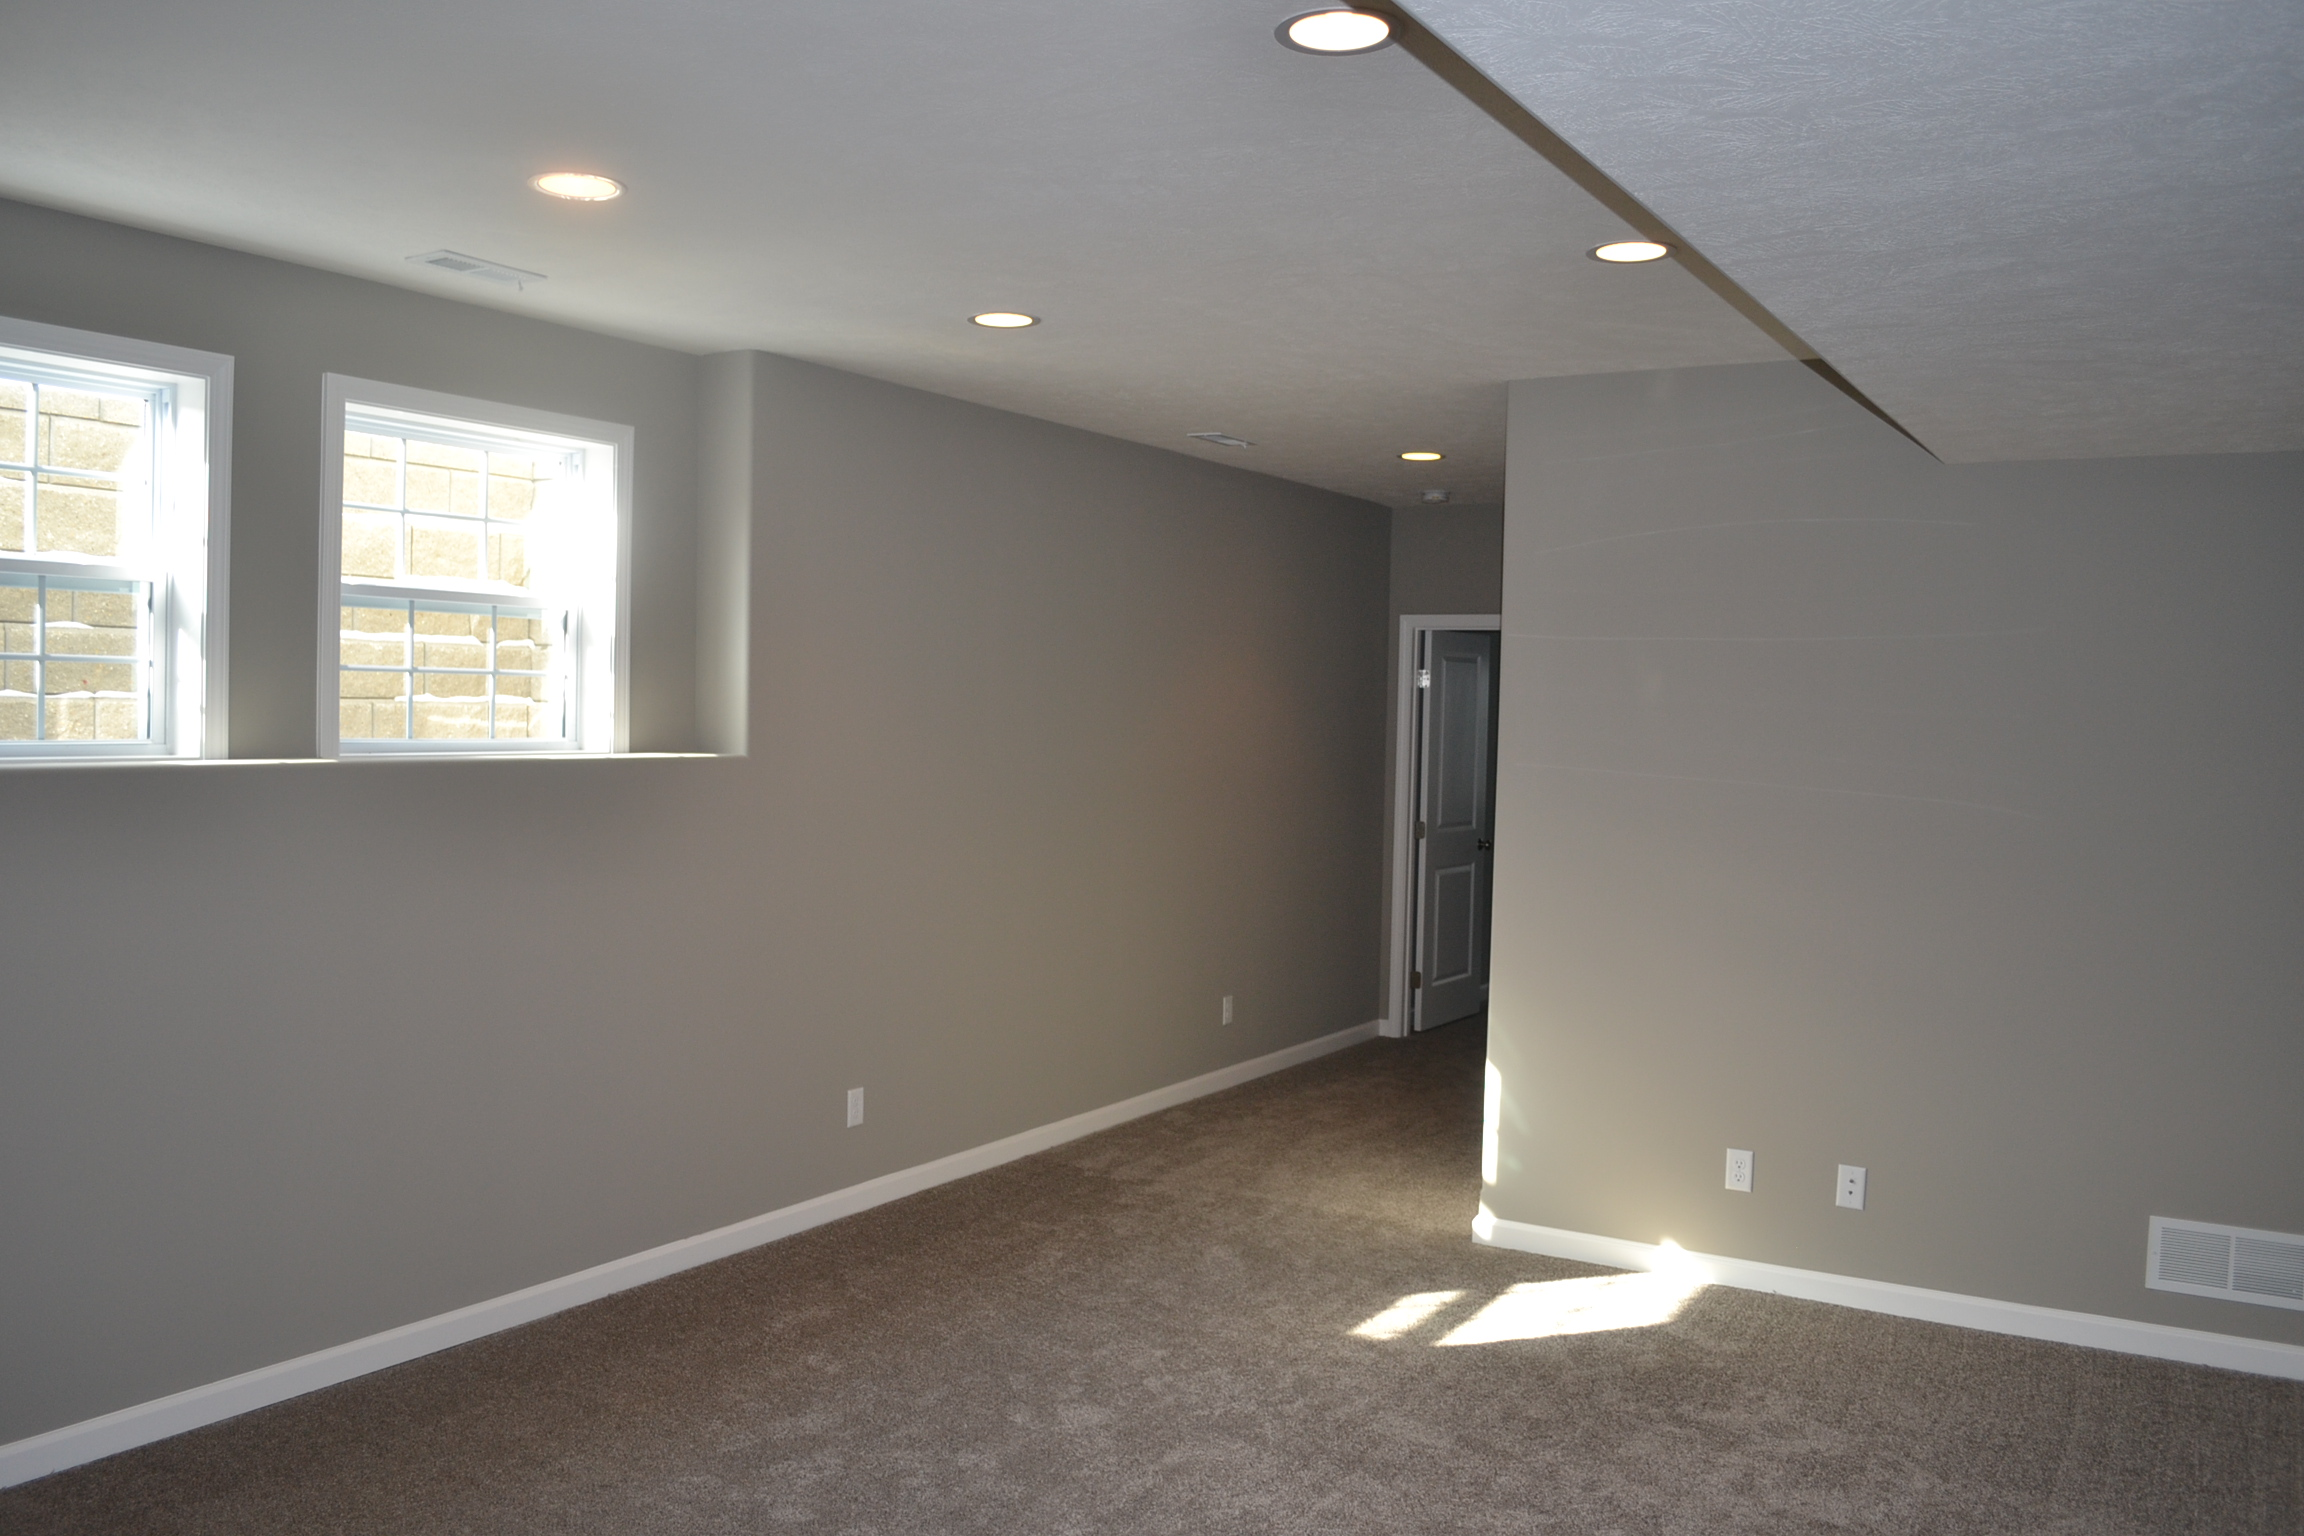 New Home in Champaign with basement windows